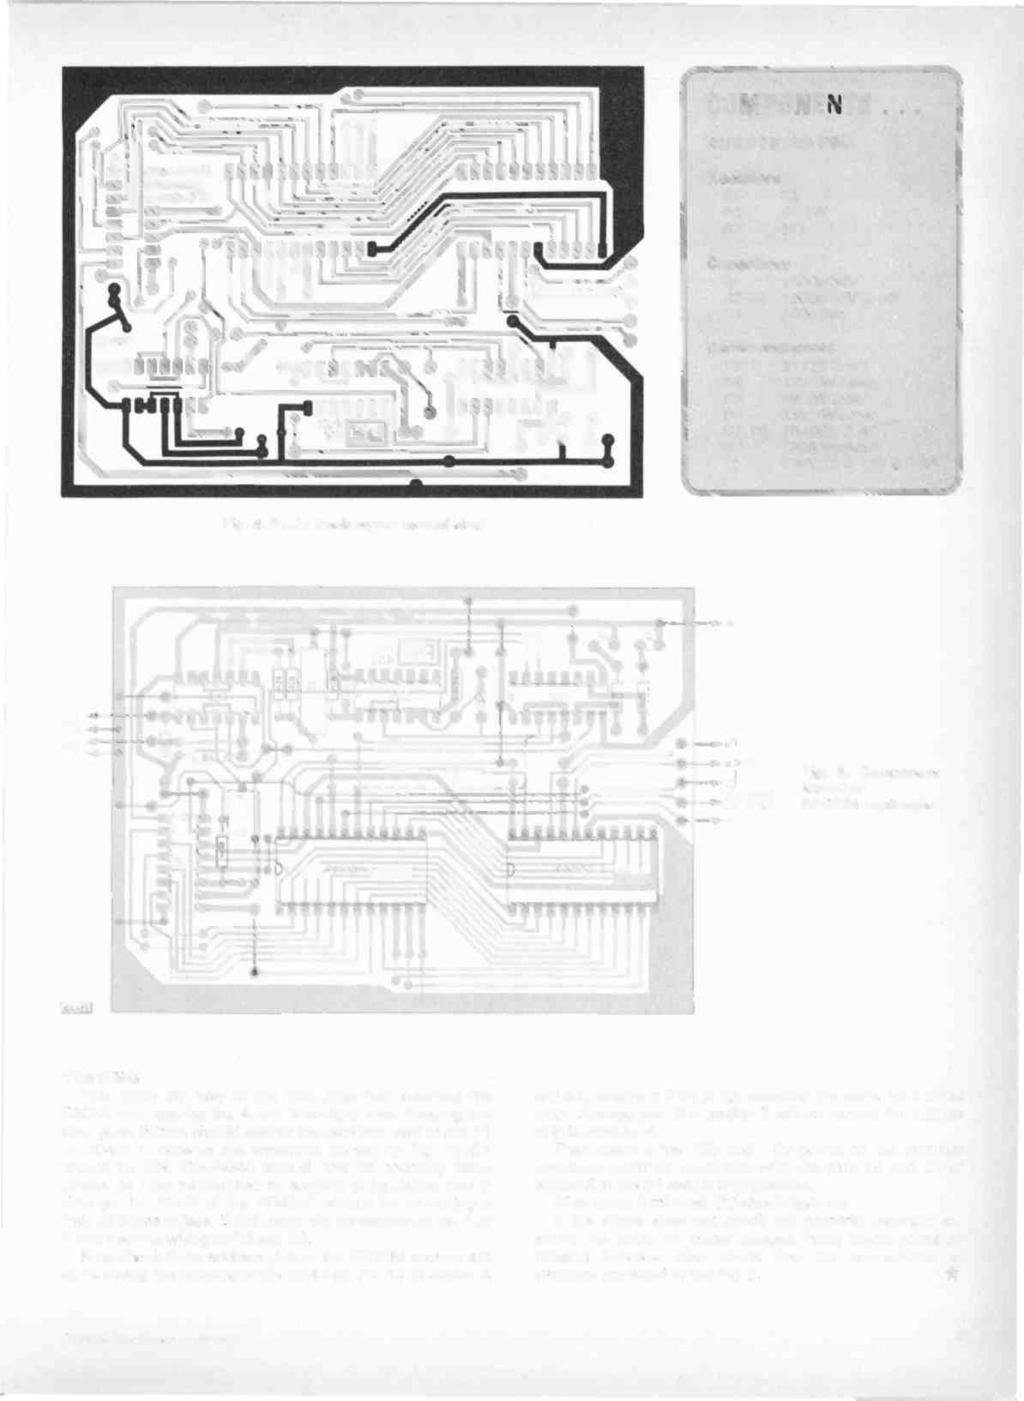 Electron Cs Isu Ige Practi Cal Sli 90p July 1984 Logic Analvbe Innovative Blood Pin Out For 741type Operational Amplifier T 1 I Tic 4 0 17rmittal